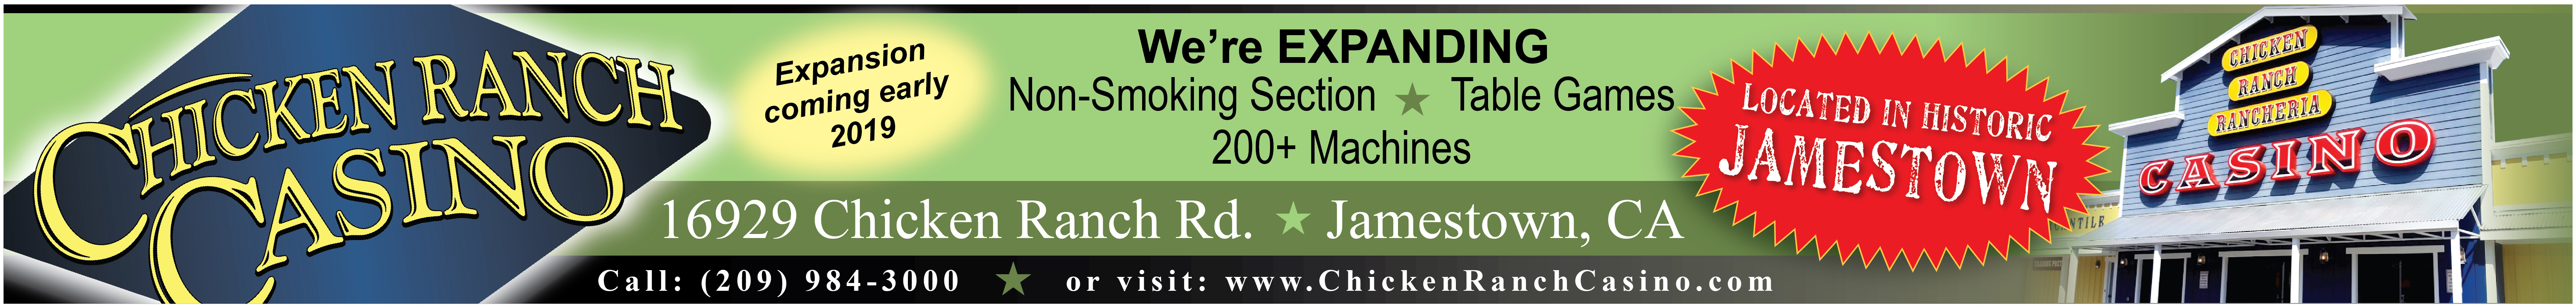 Chicken Ranch Casino - 2018 - 1 - Banner - Random